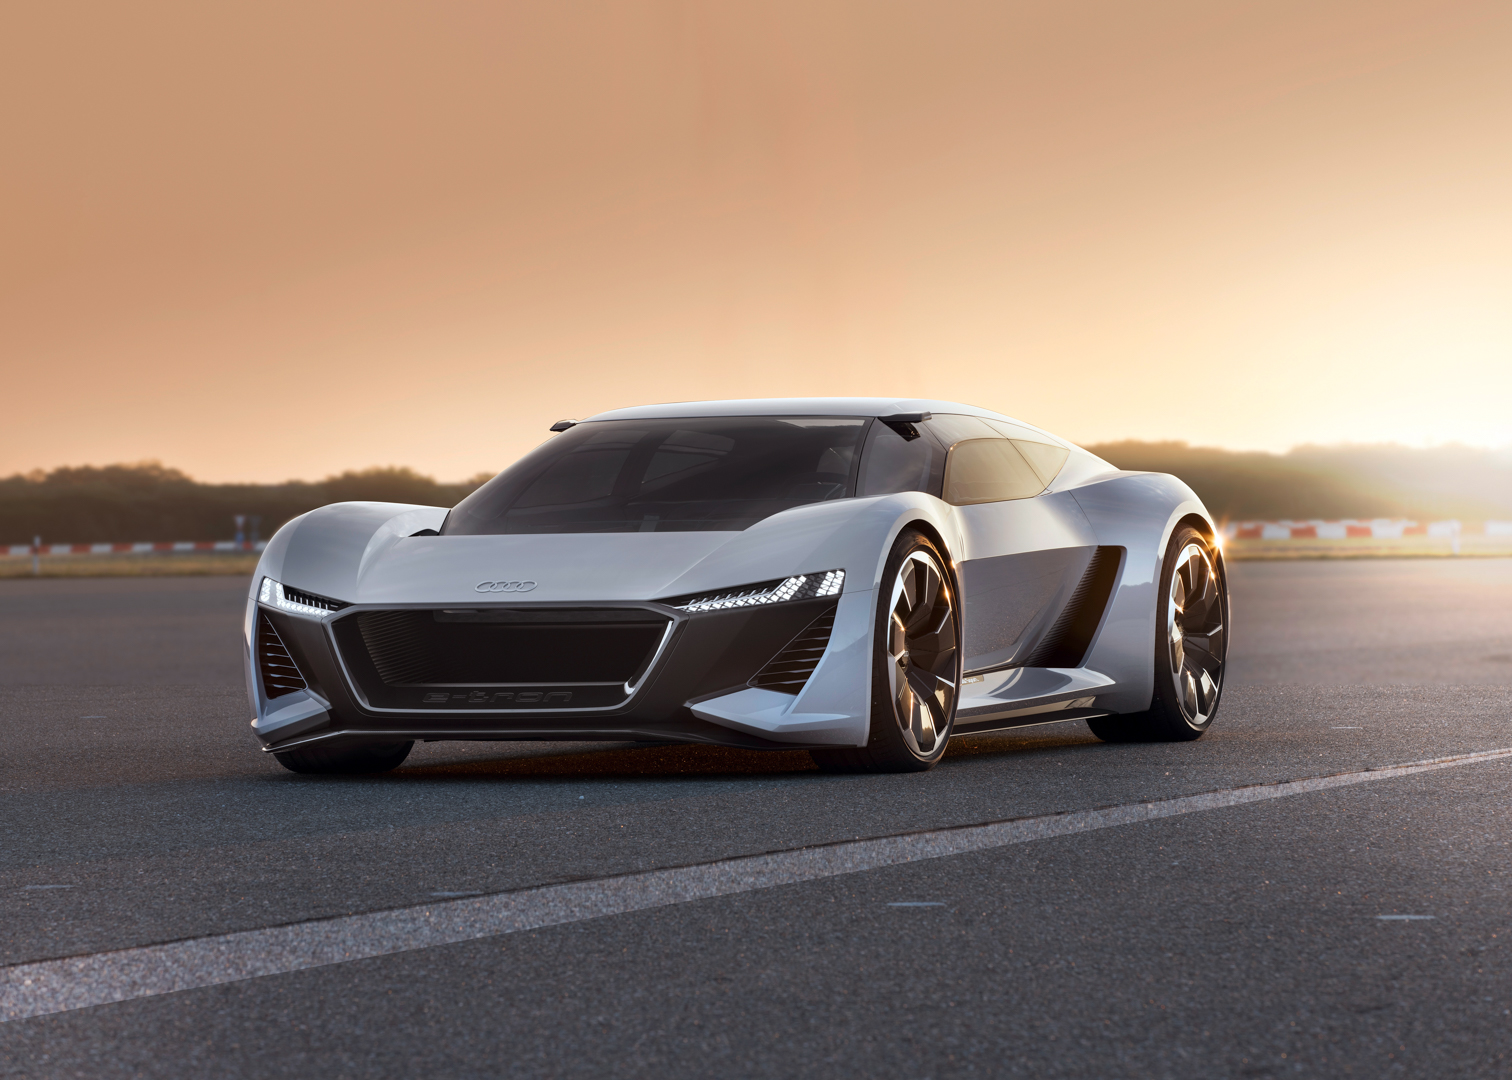 Audi PB18 e tron Concept Pebble Beach 30 of 36